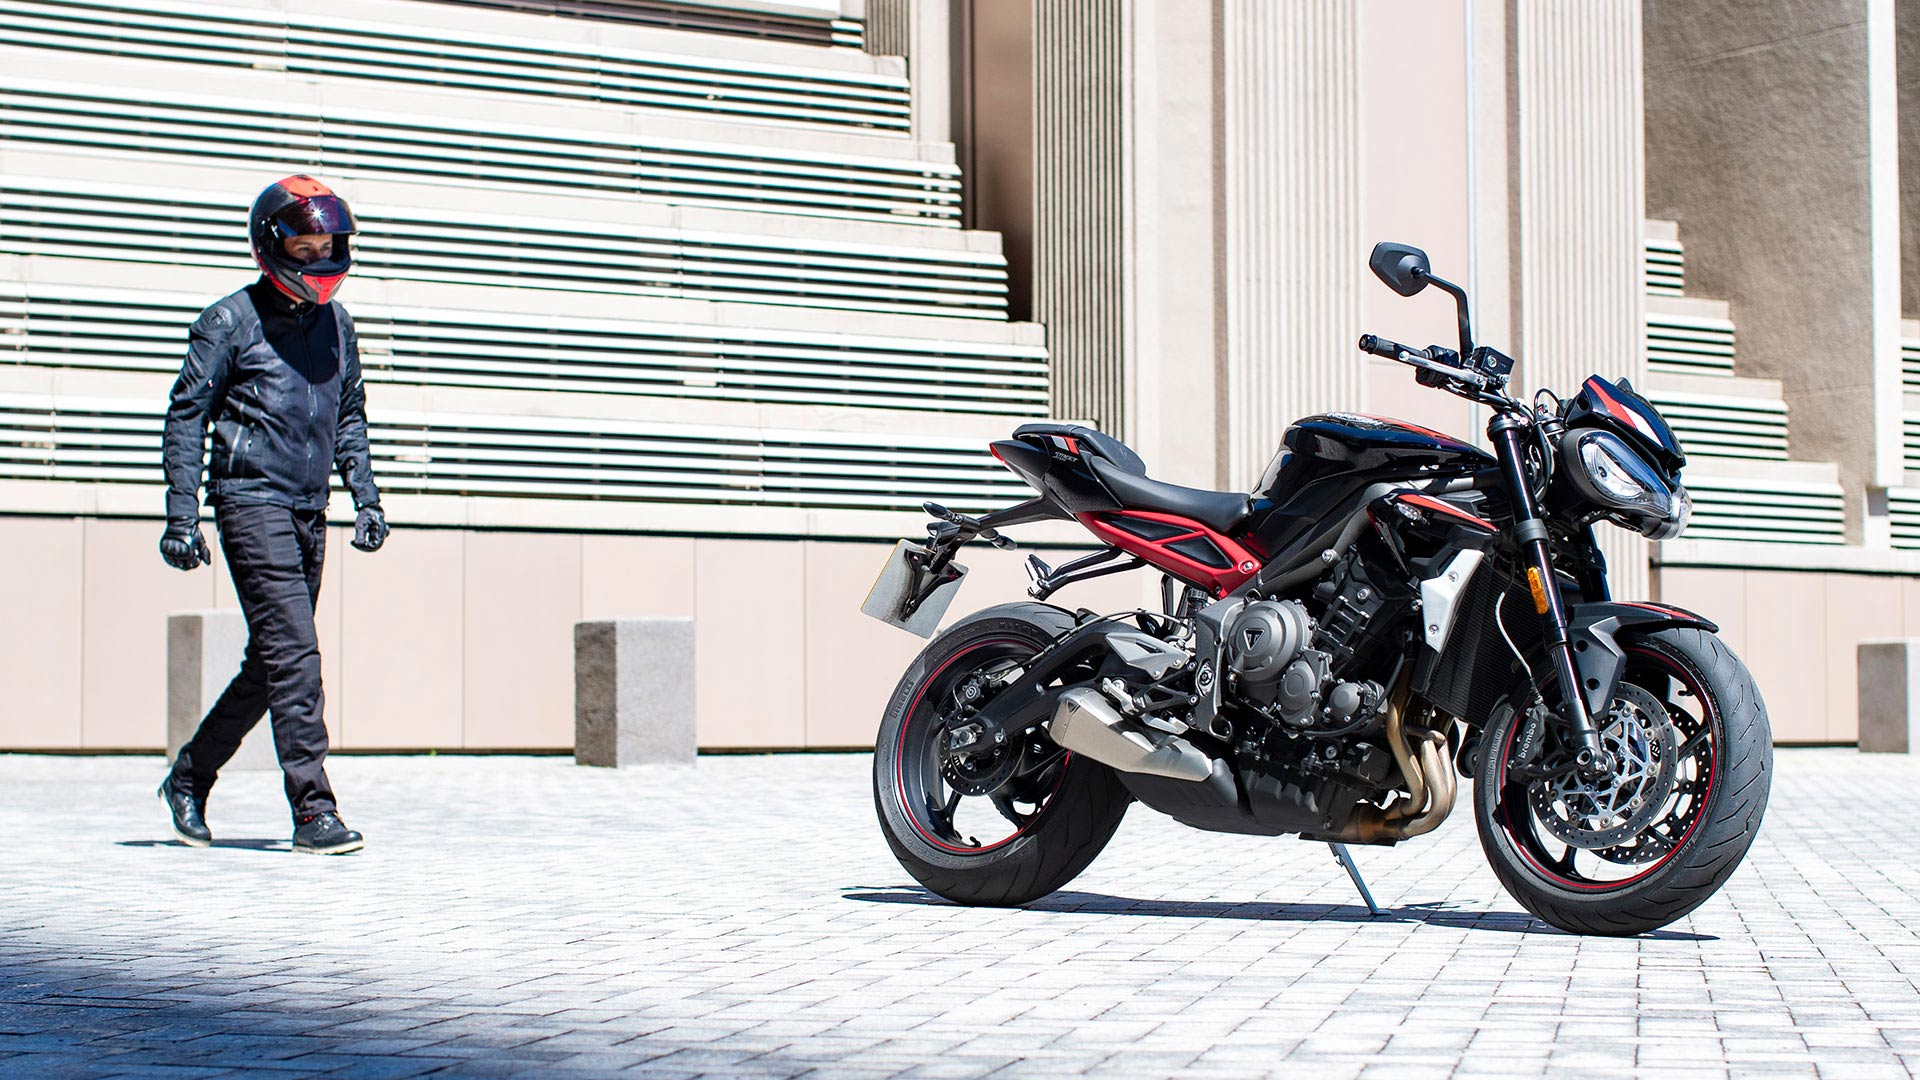 Triumph Street Triple R stationary